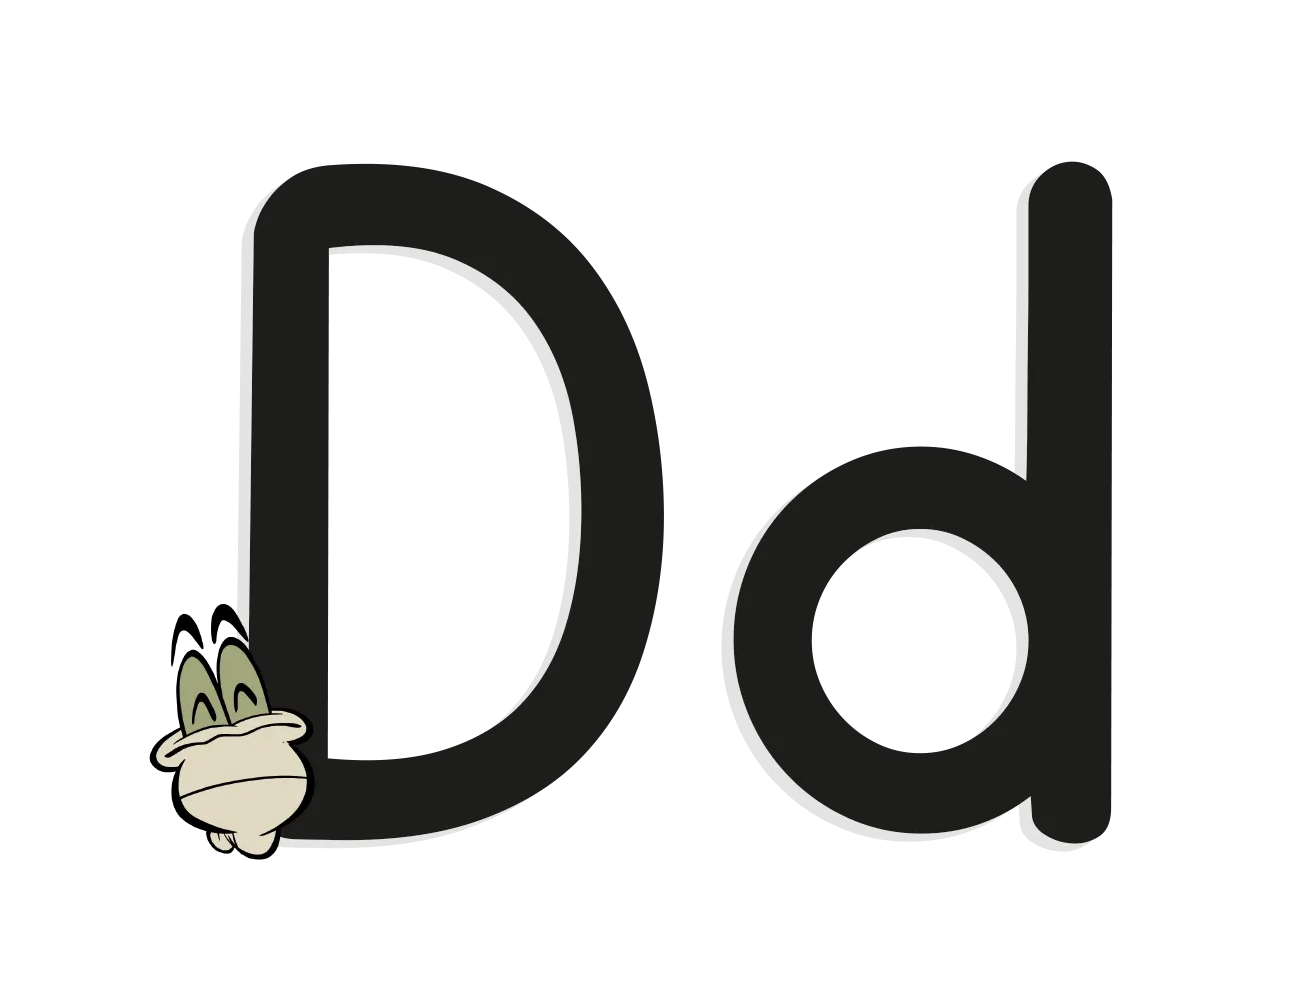 The letter D with an illustrated worm